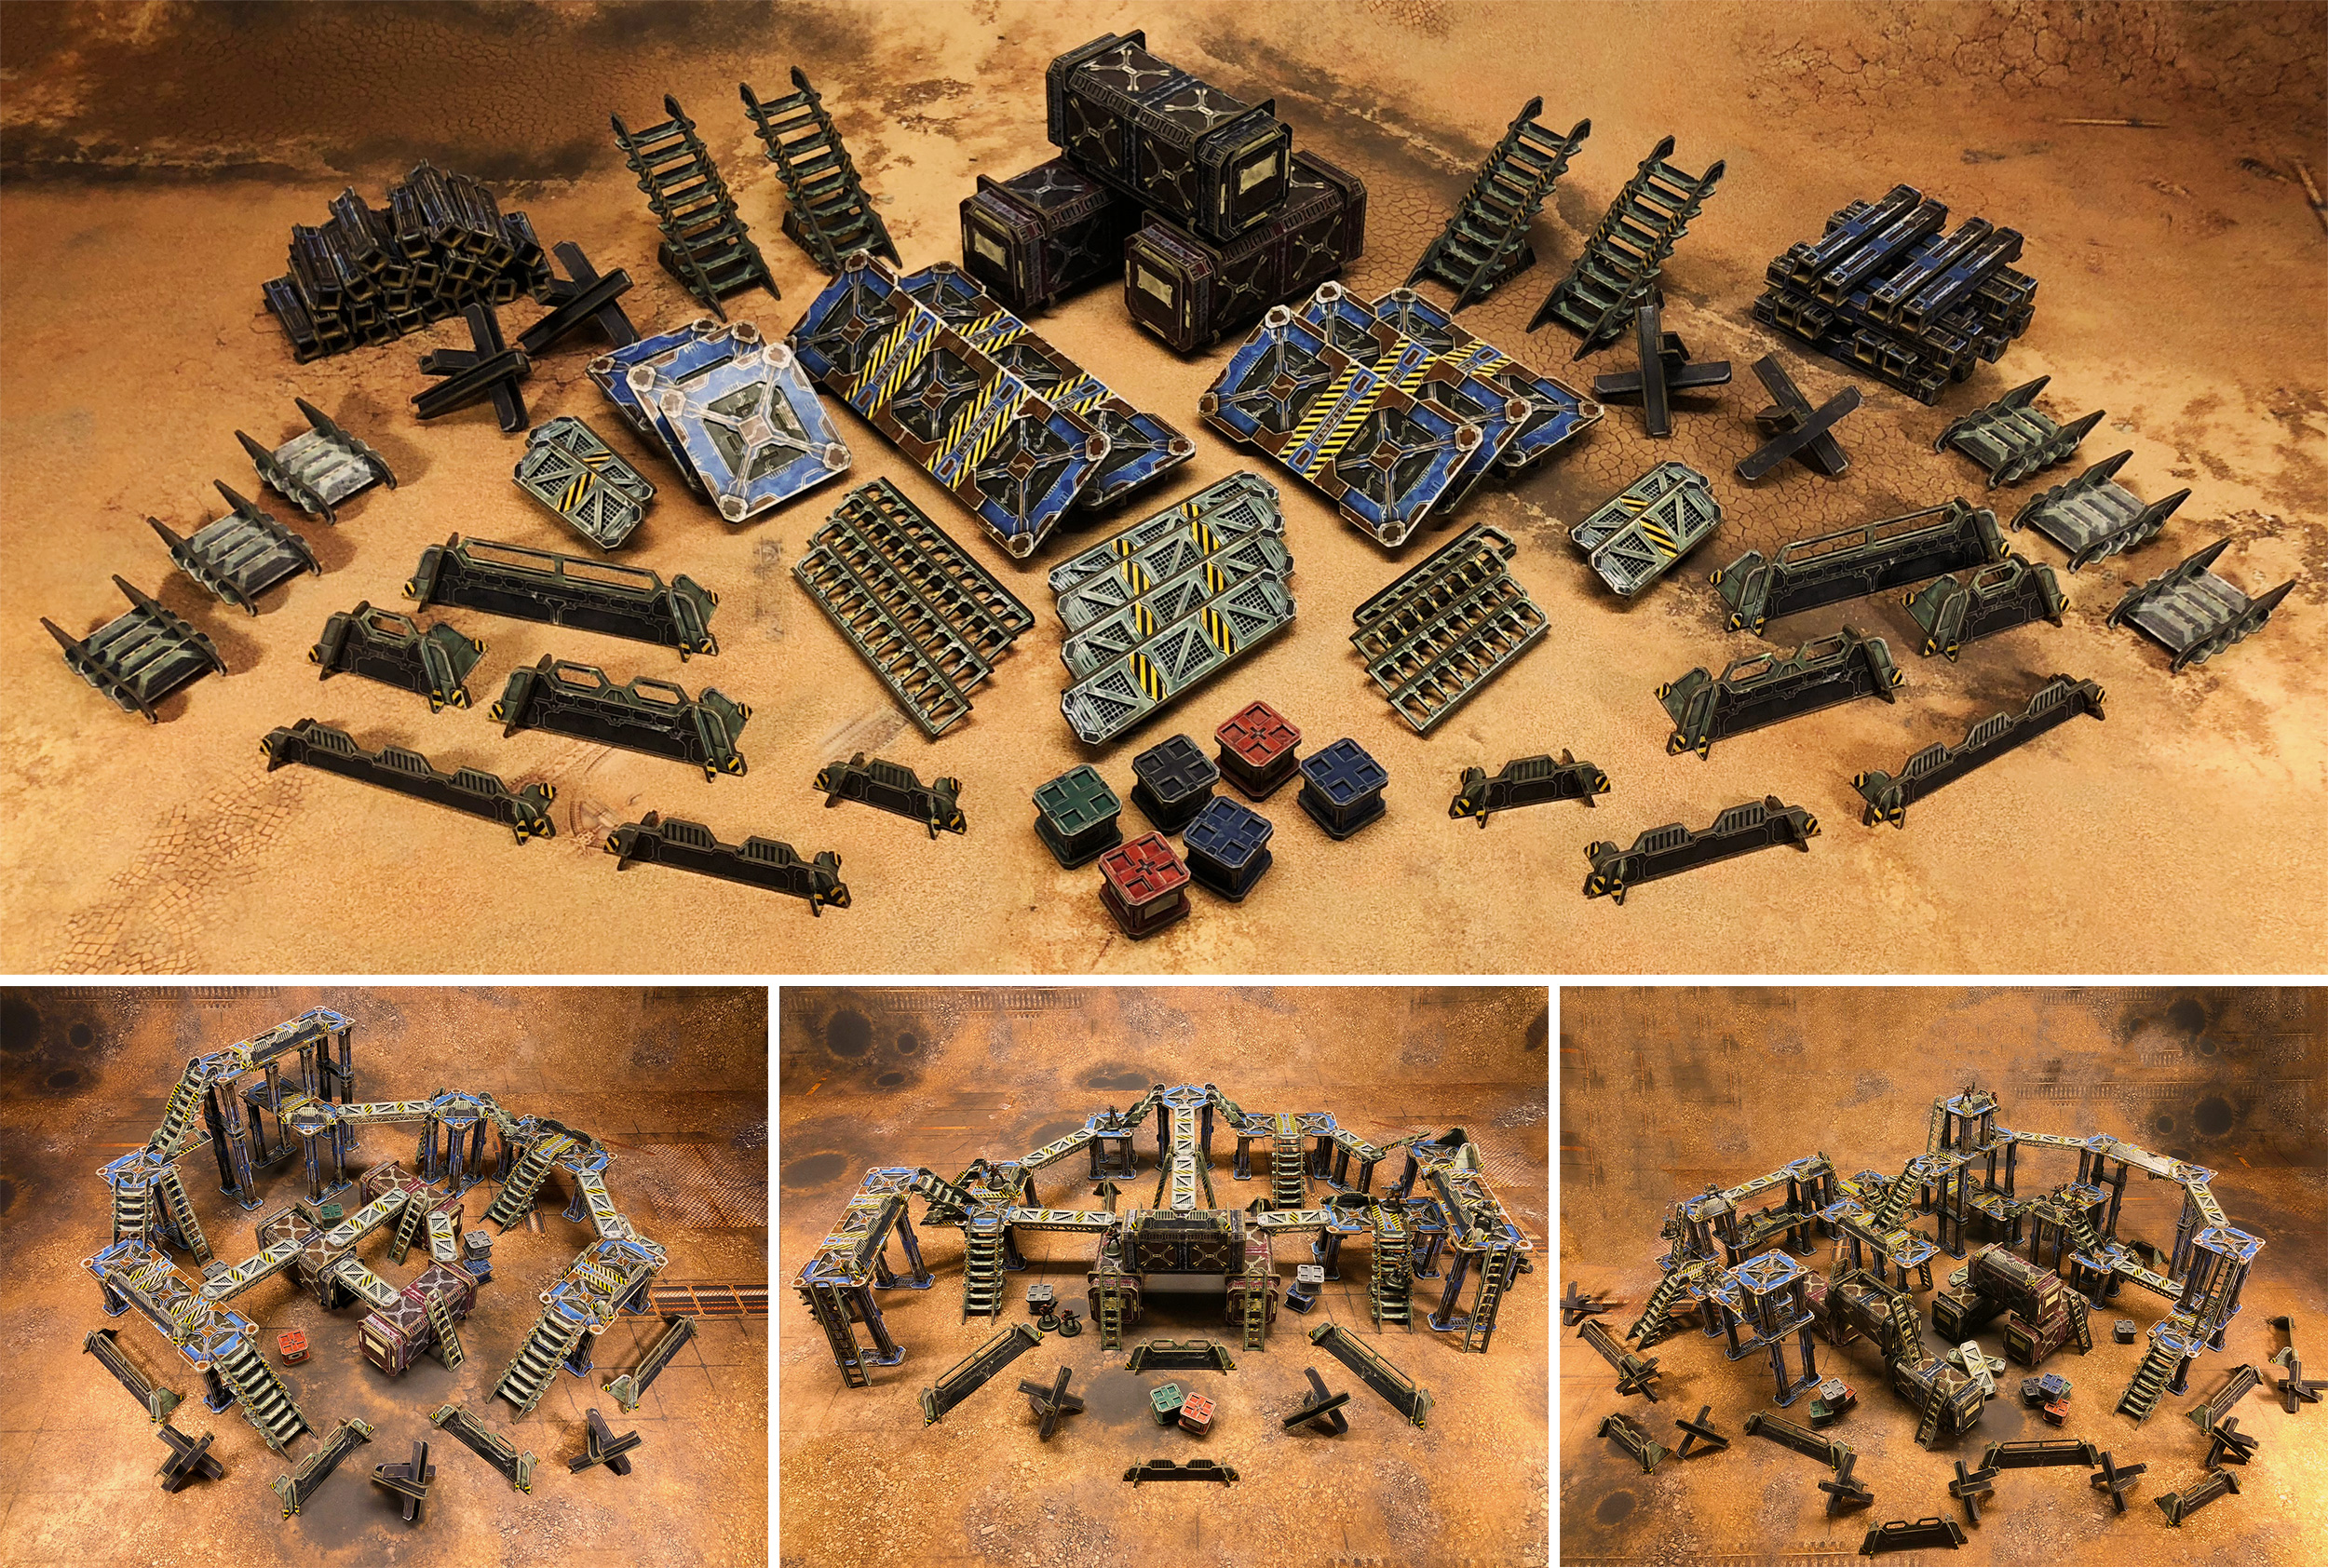 TinkerTurf - Full Color Wargaming Terrain by TinkerHouse